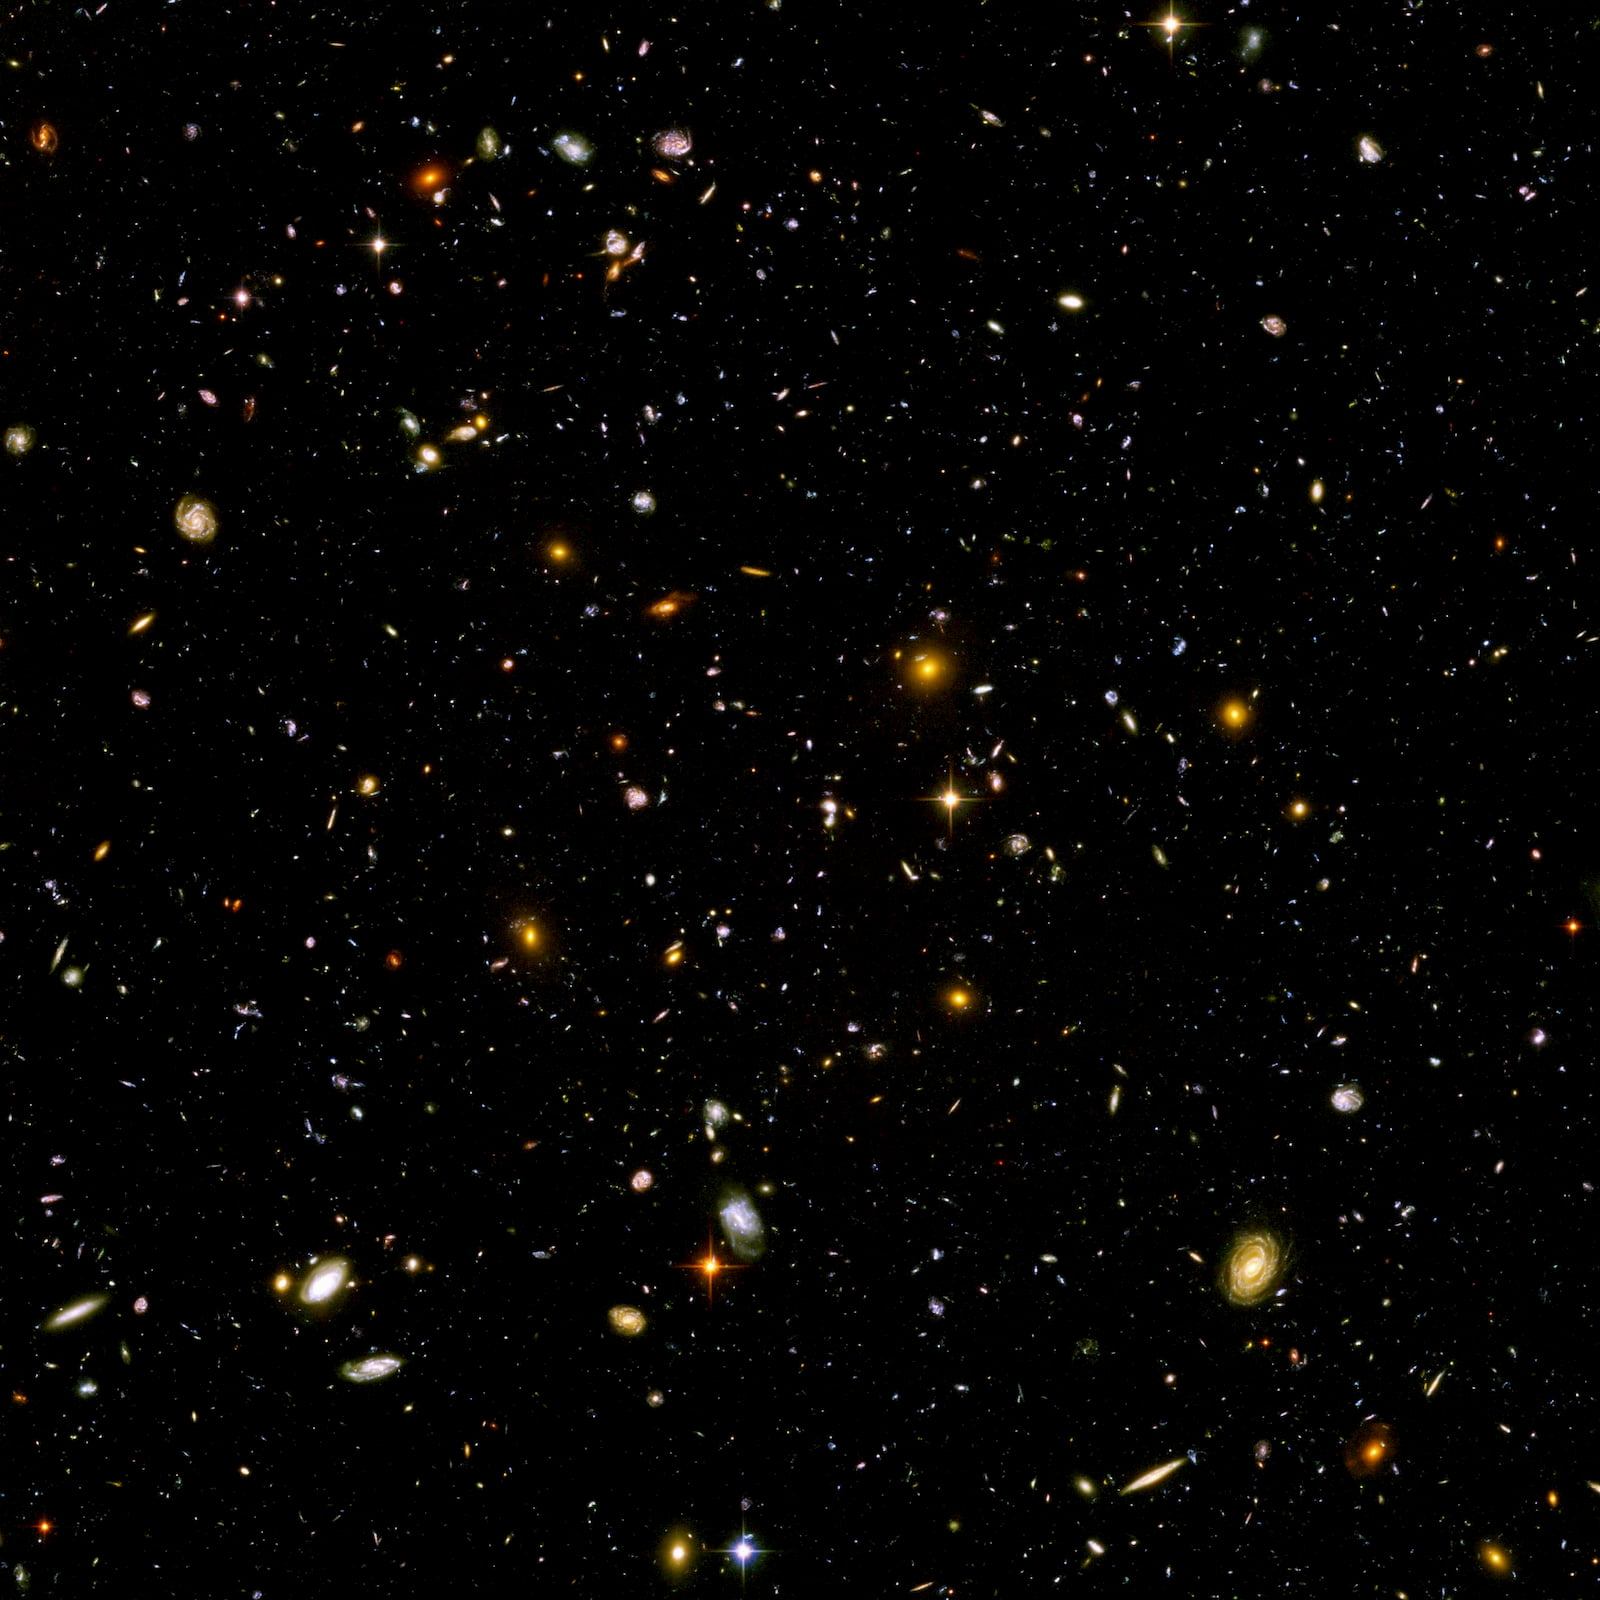 The hubble ultra deep field image showing countless galaxies in the depths of seemingly empty space.